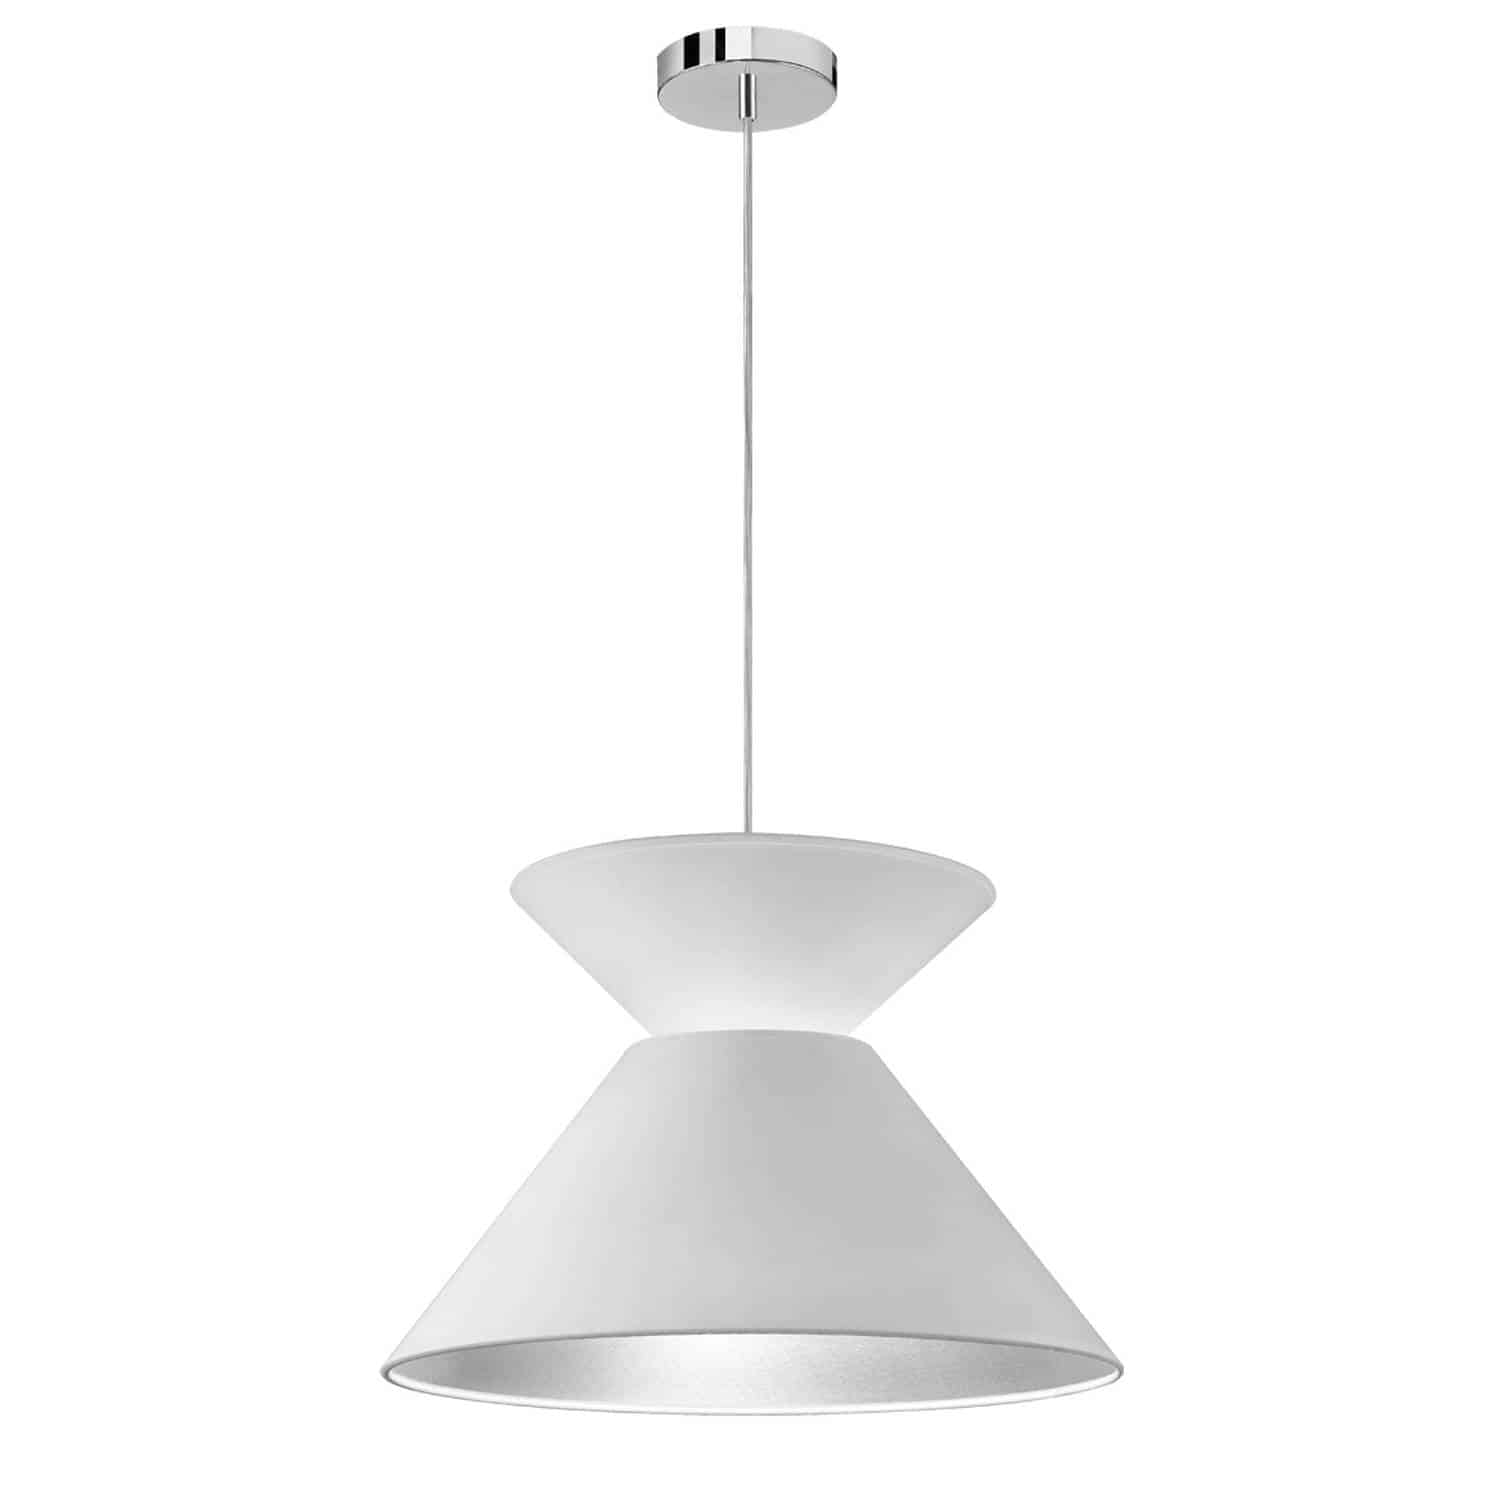 1 Light Patricia Pendant, Polished Chrome with White/Silver Shade